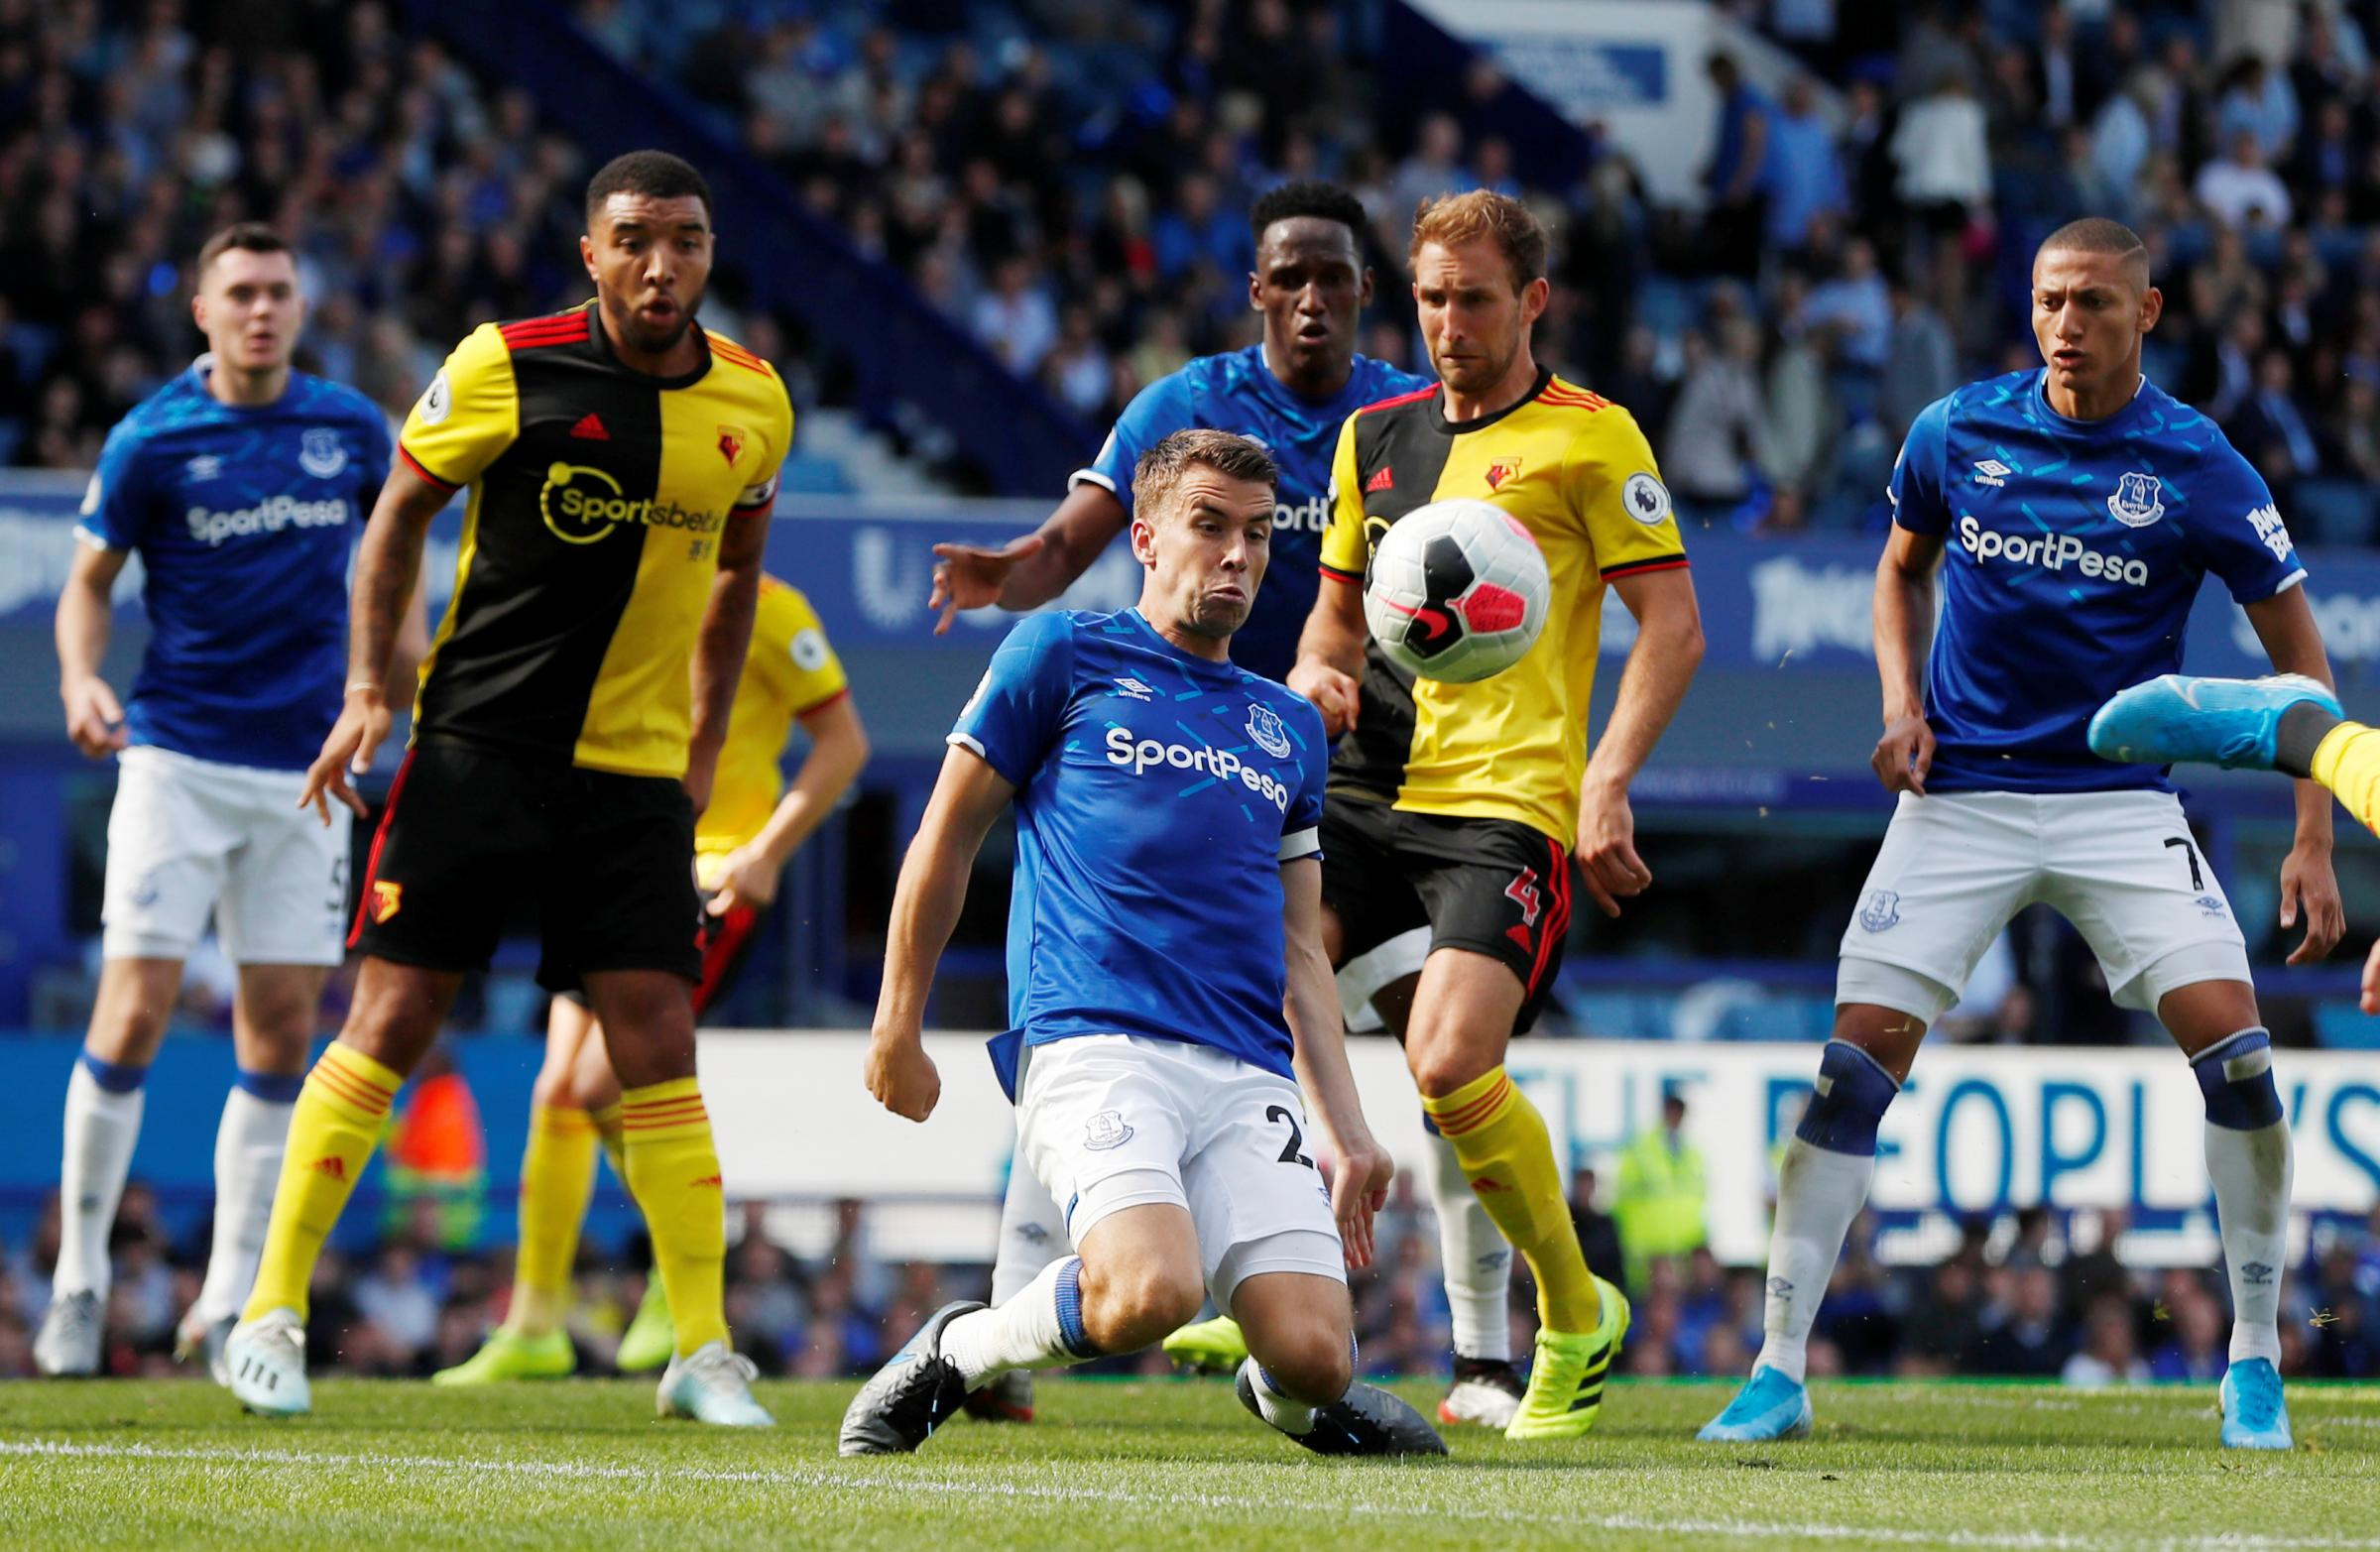 Watford players rated after another winless trip to Everton